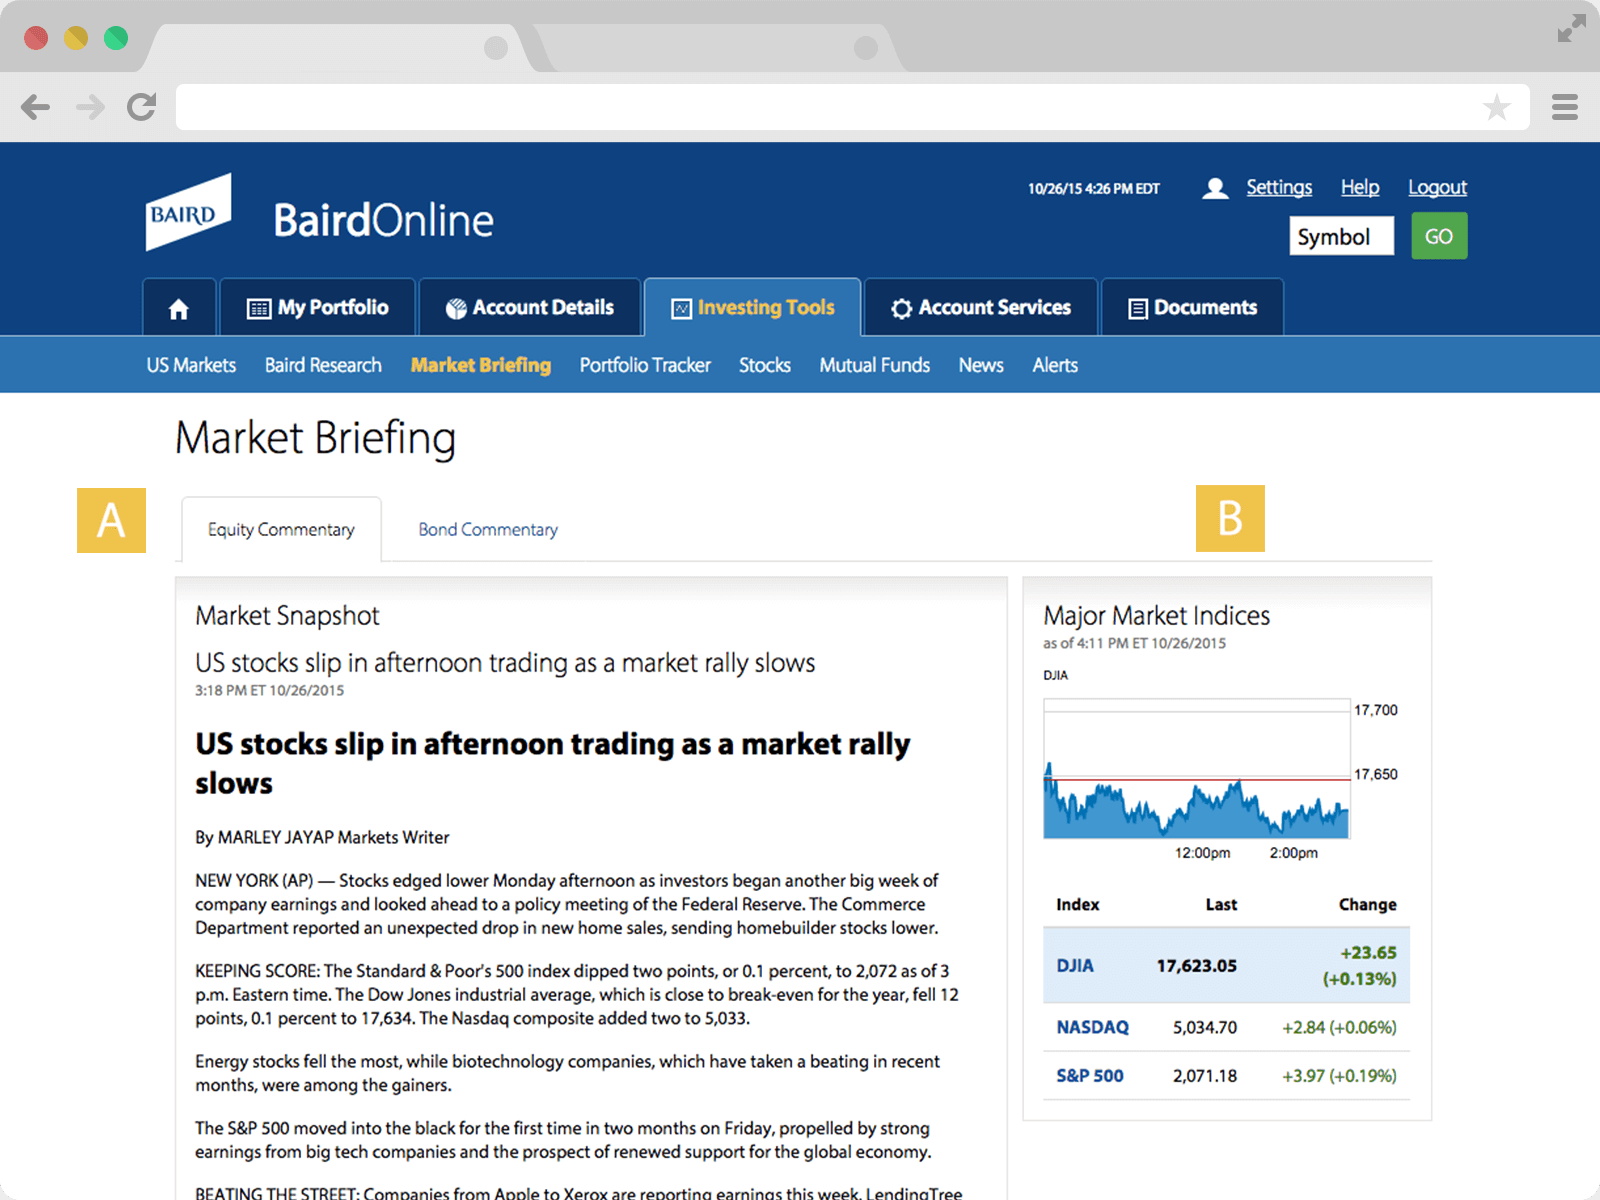 Screenshot of Market Briefing page